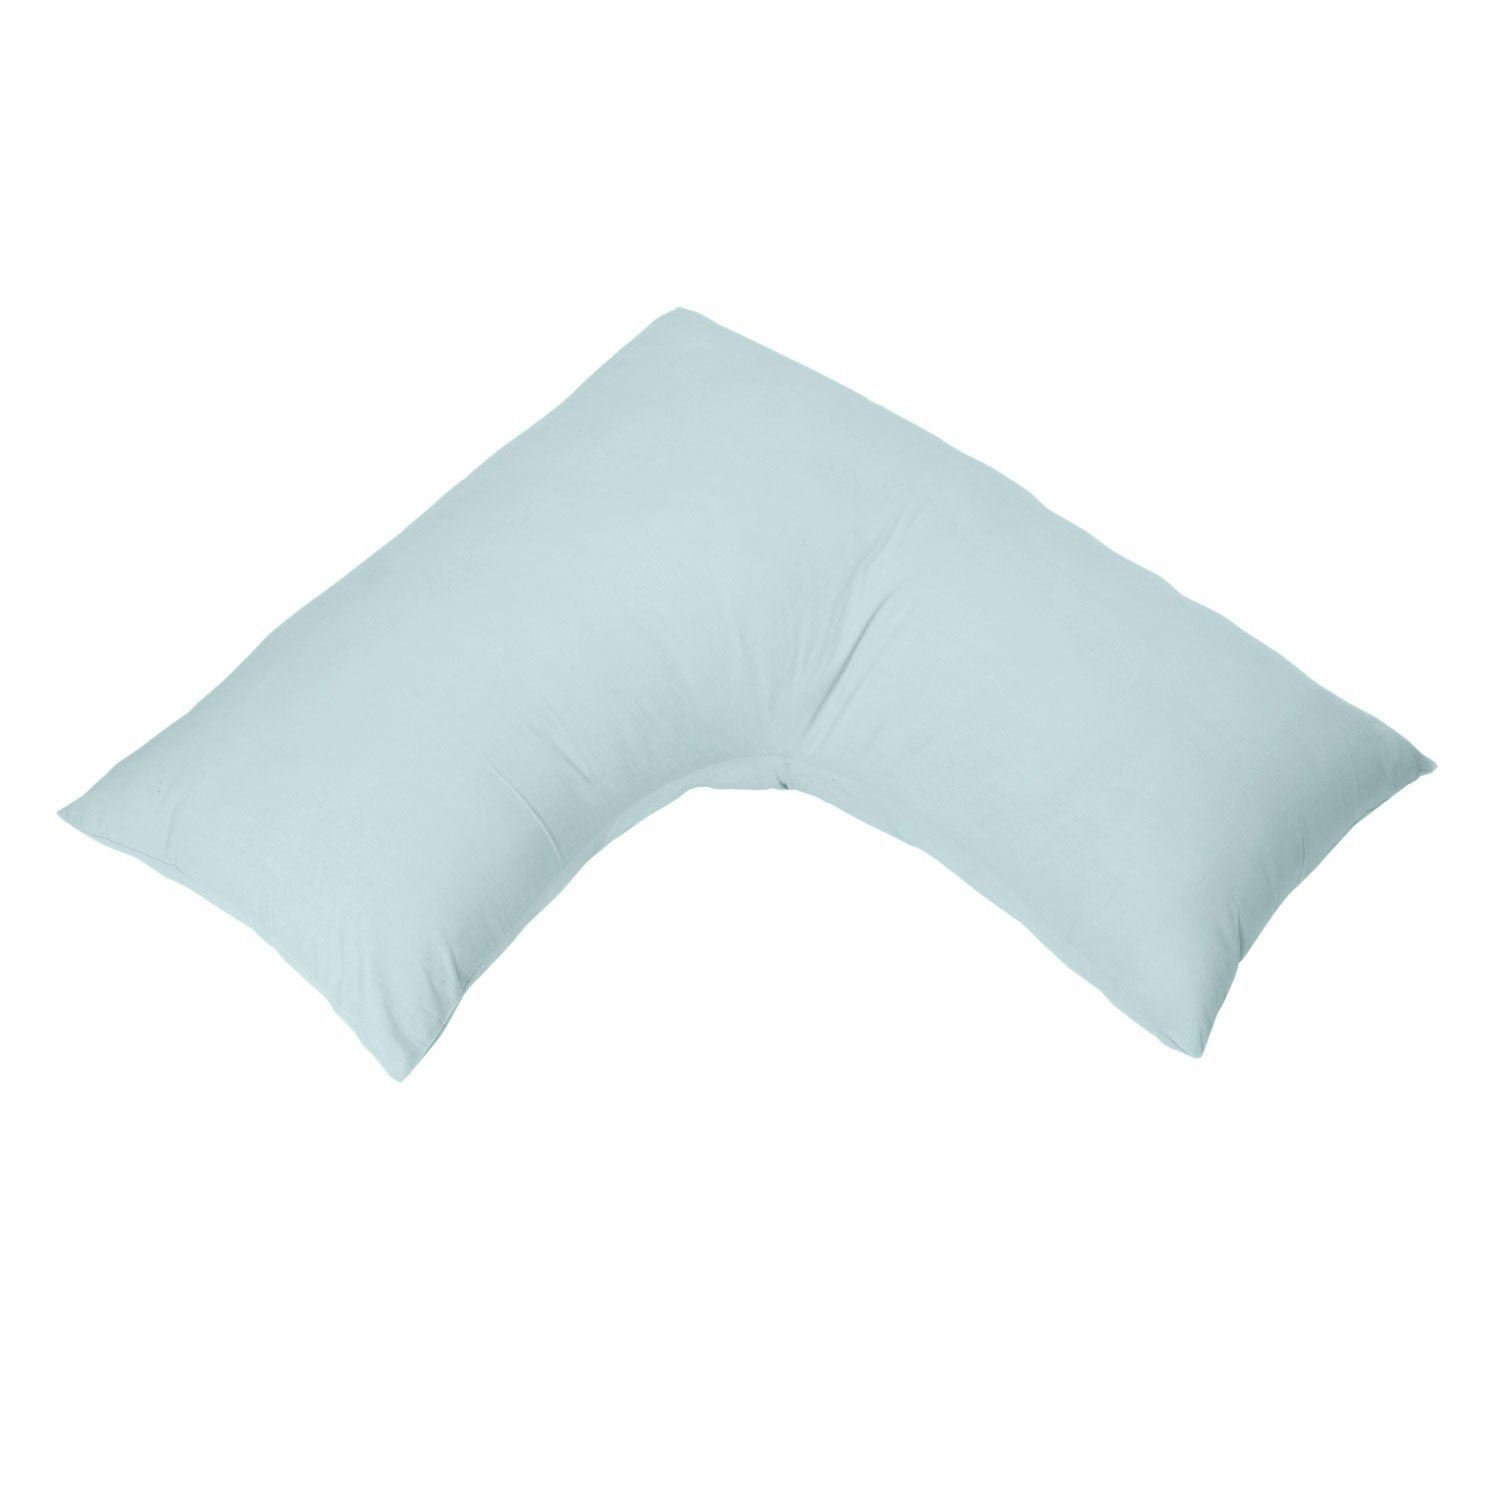 Homescapes Organic Cotton V Shaped Pillowcase White 400 Thread Count Percale Hypoallergenic Bedding for Orthopaedic//Pregnancy//Nursing Pillows